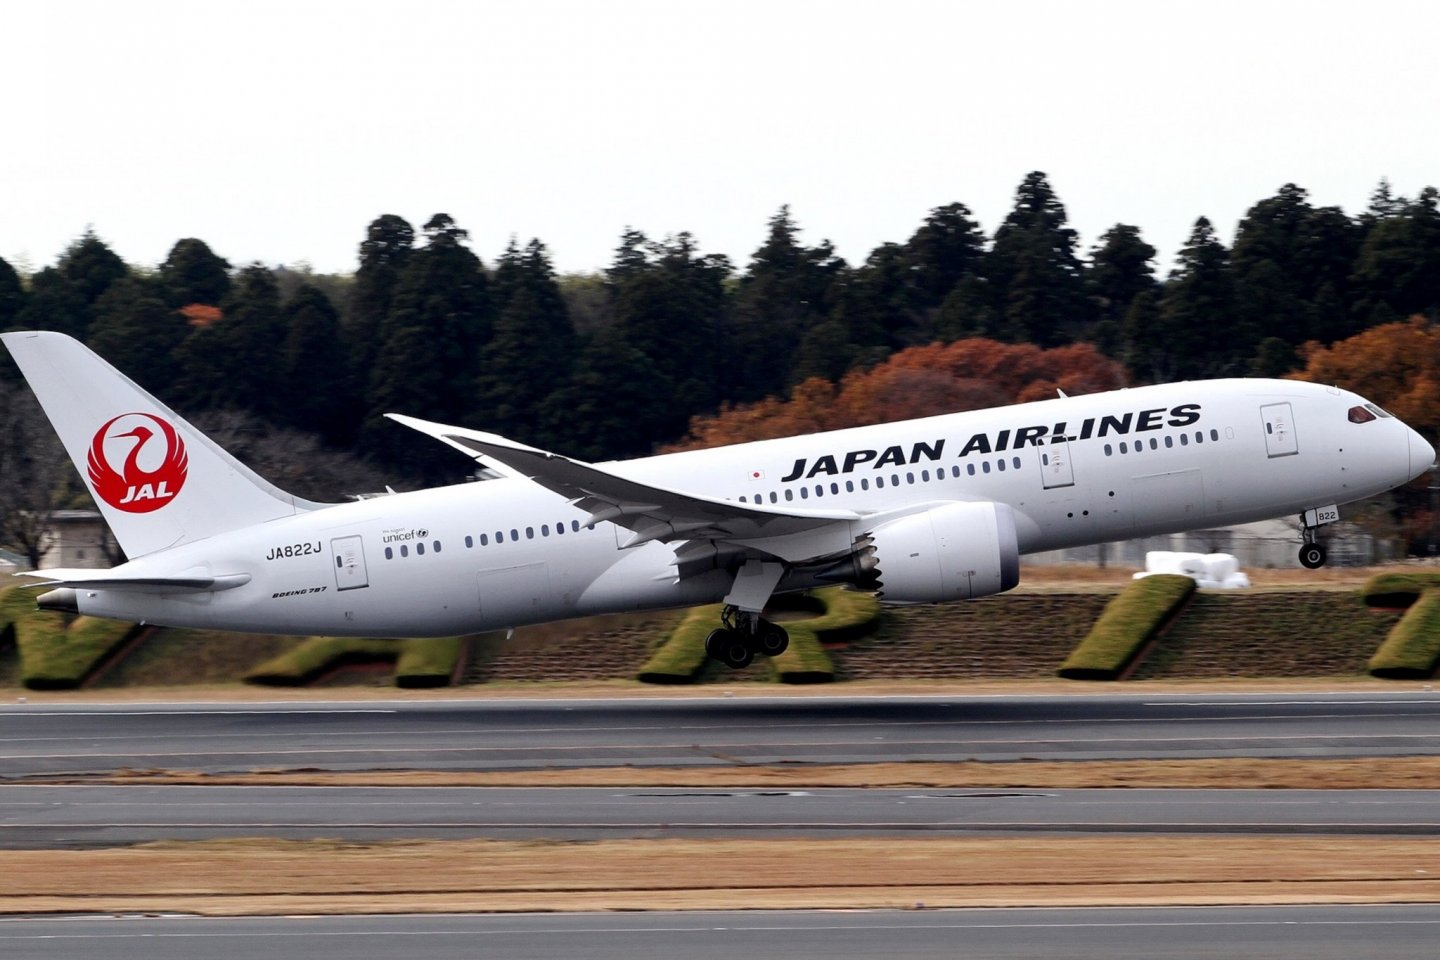 JAL Boeing wide body aircraft